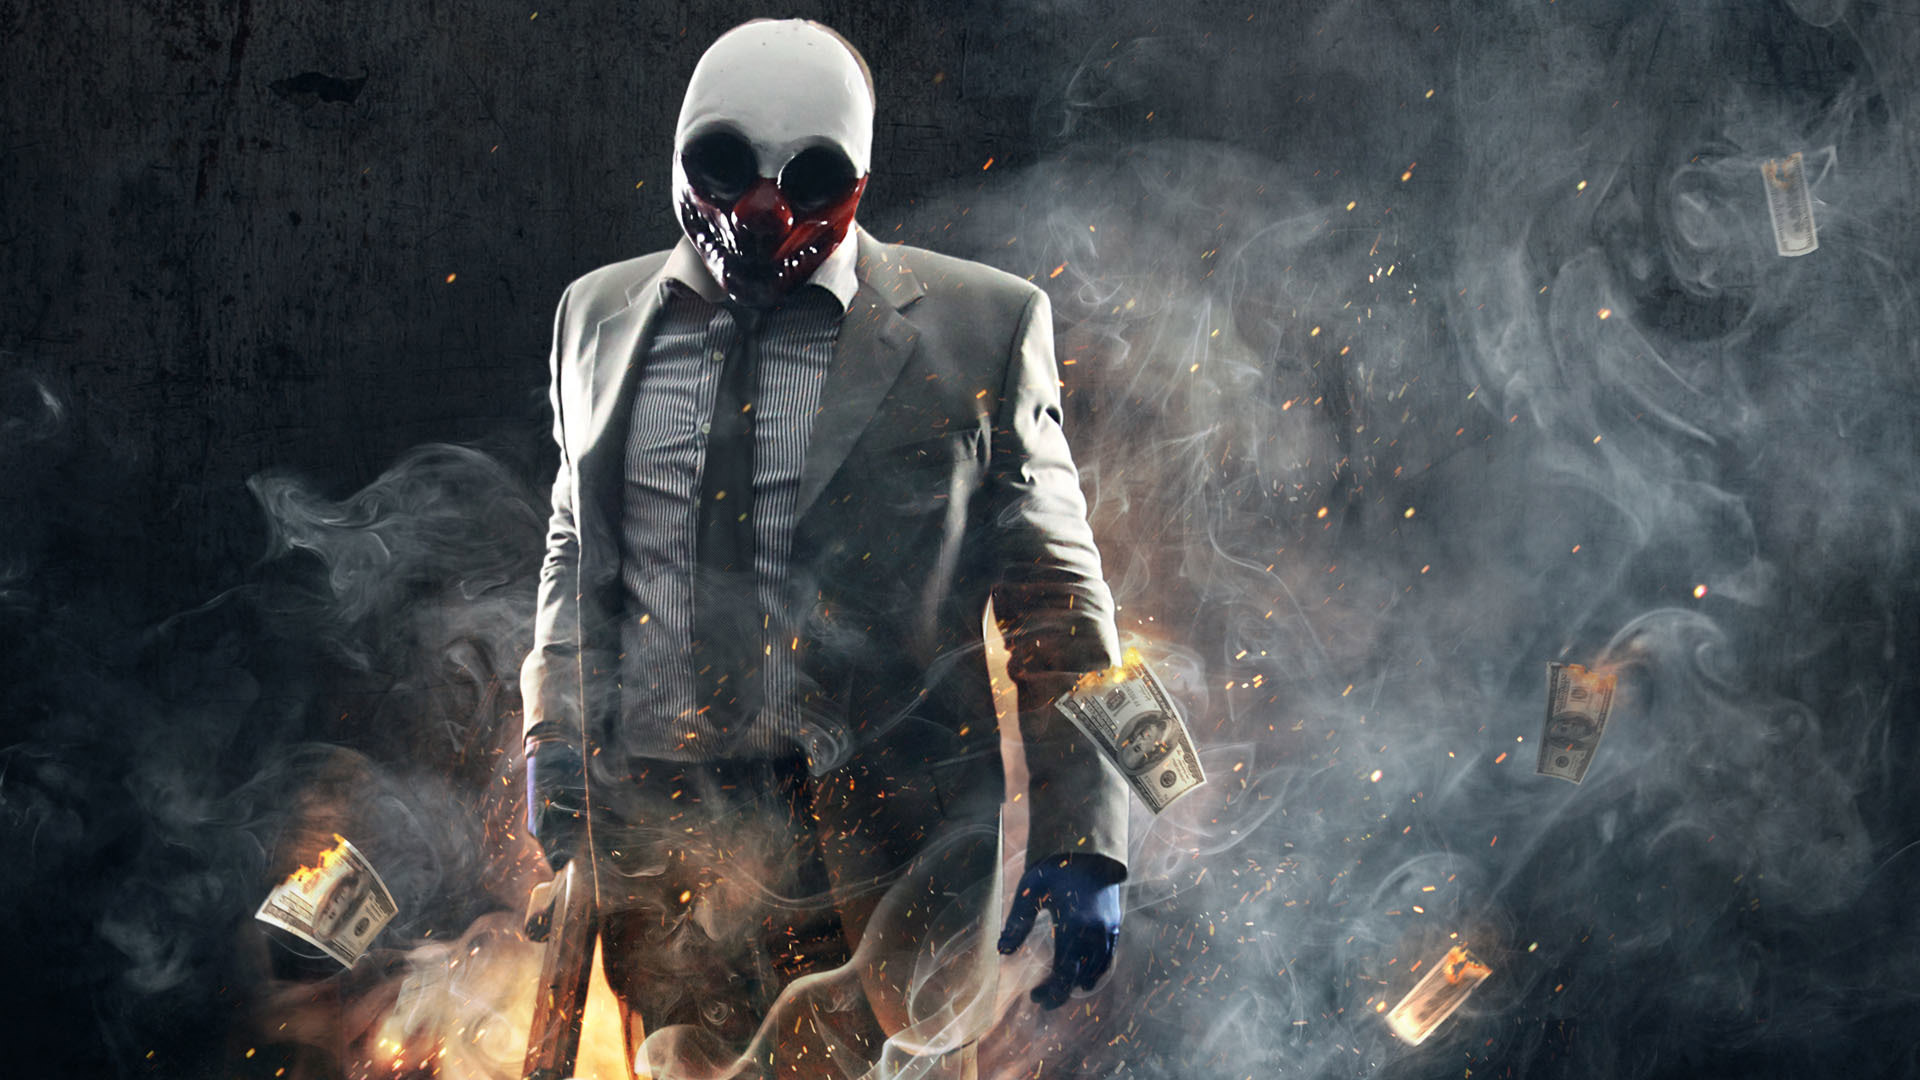 Payday 2 Wallpaper in 1920x1080